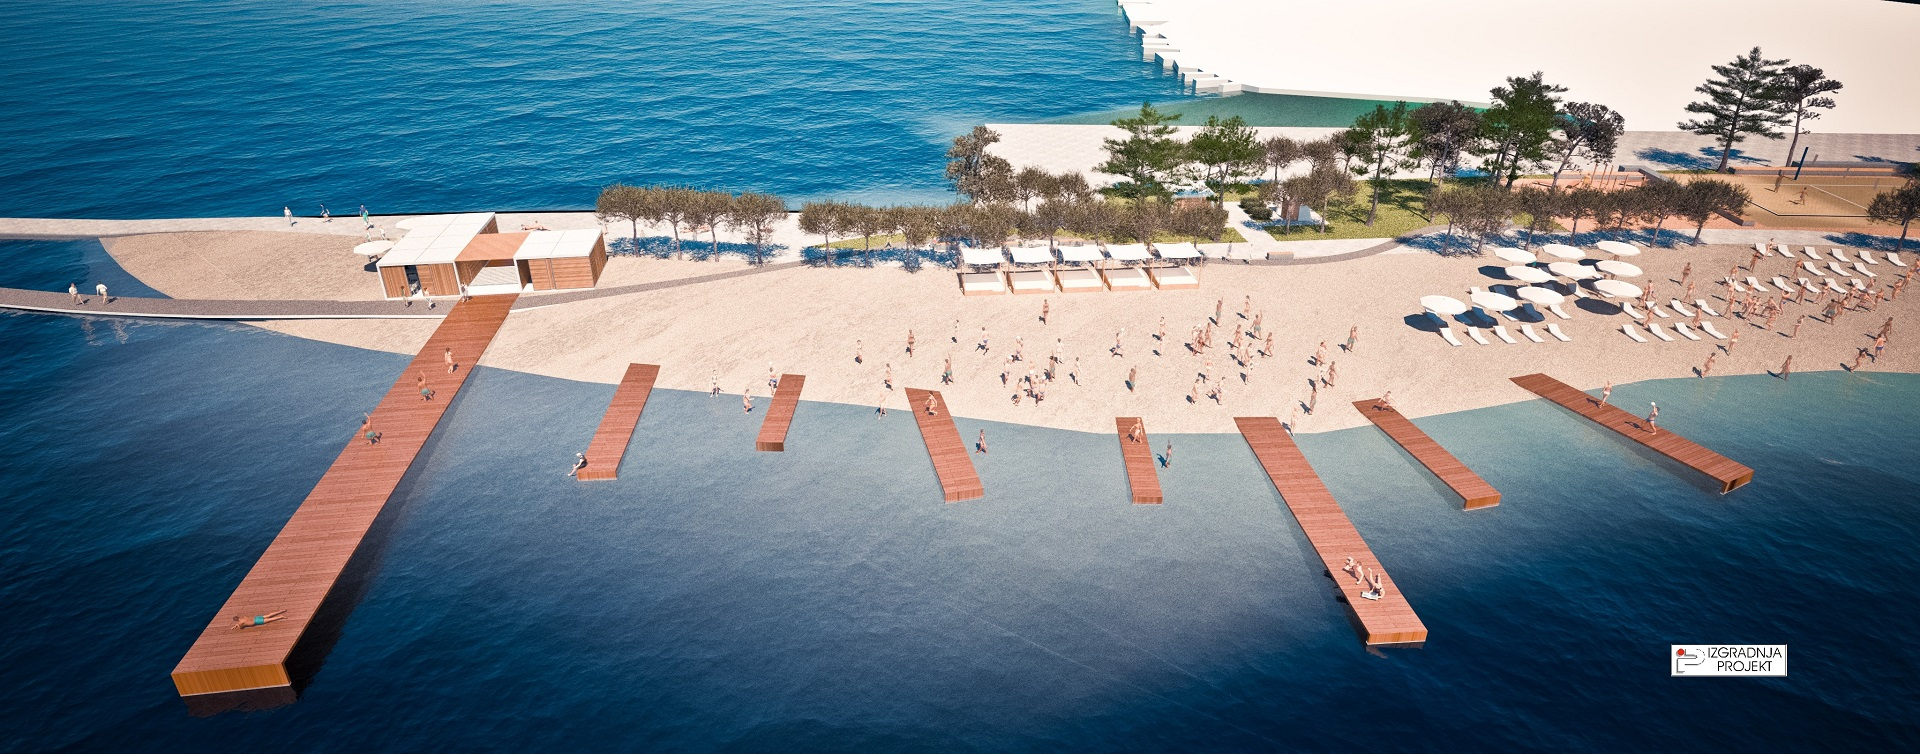 Brodarica beach makeover (photo: izgradnja projekt)